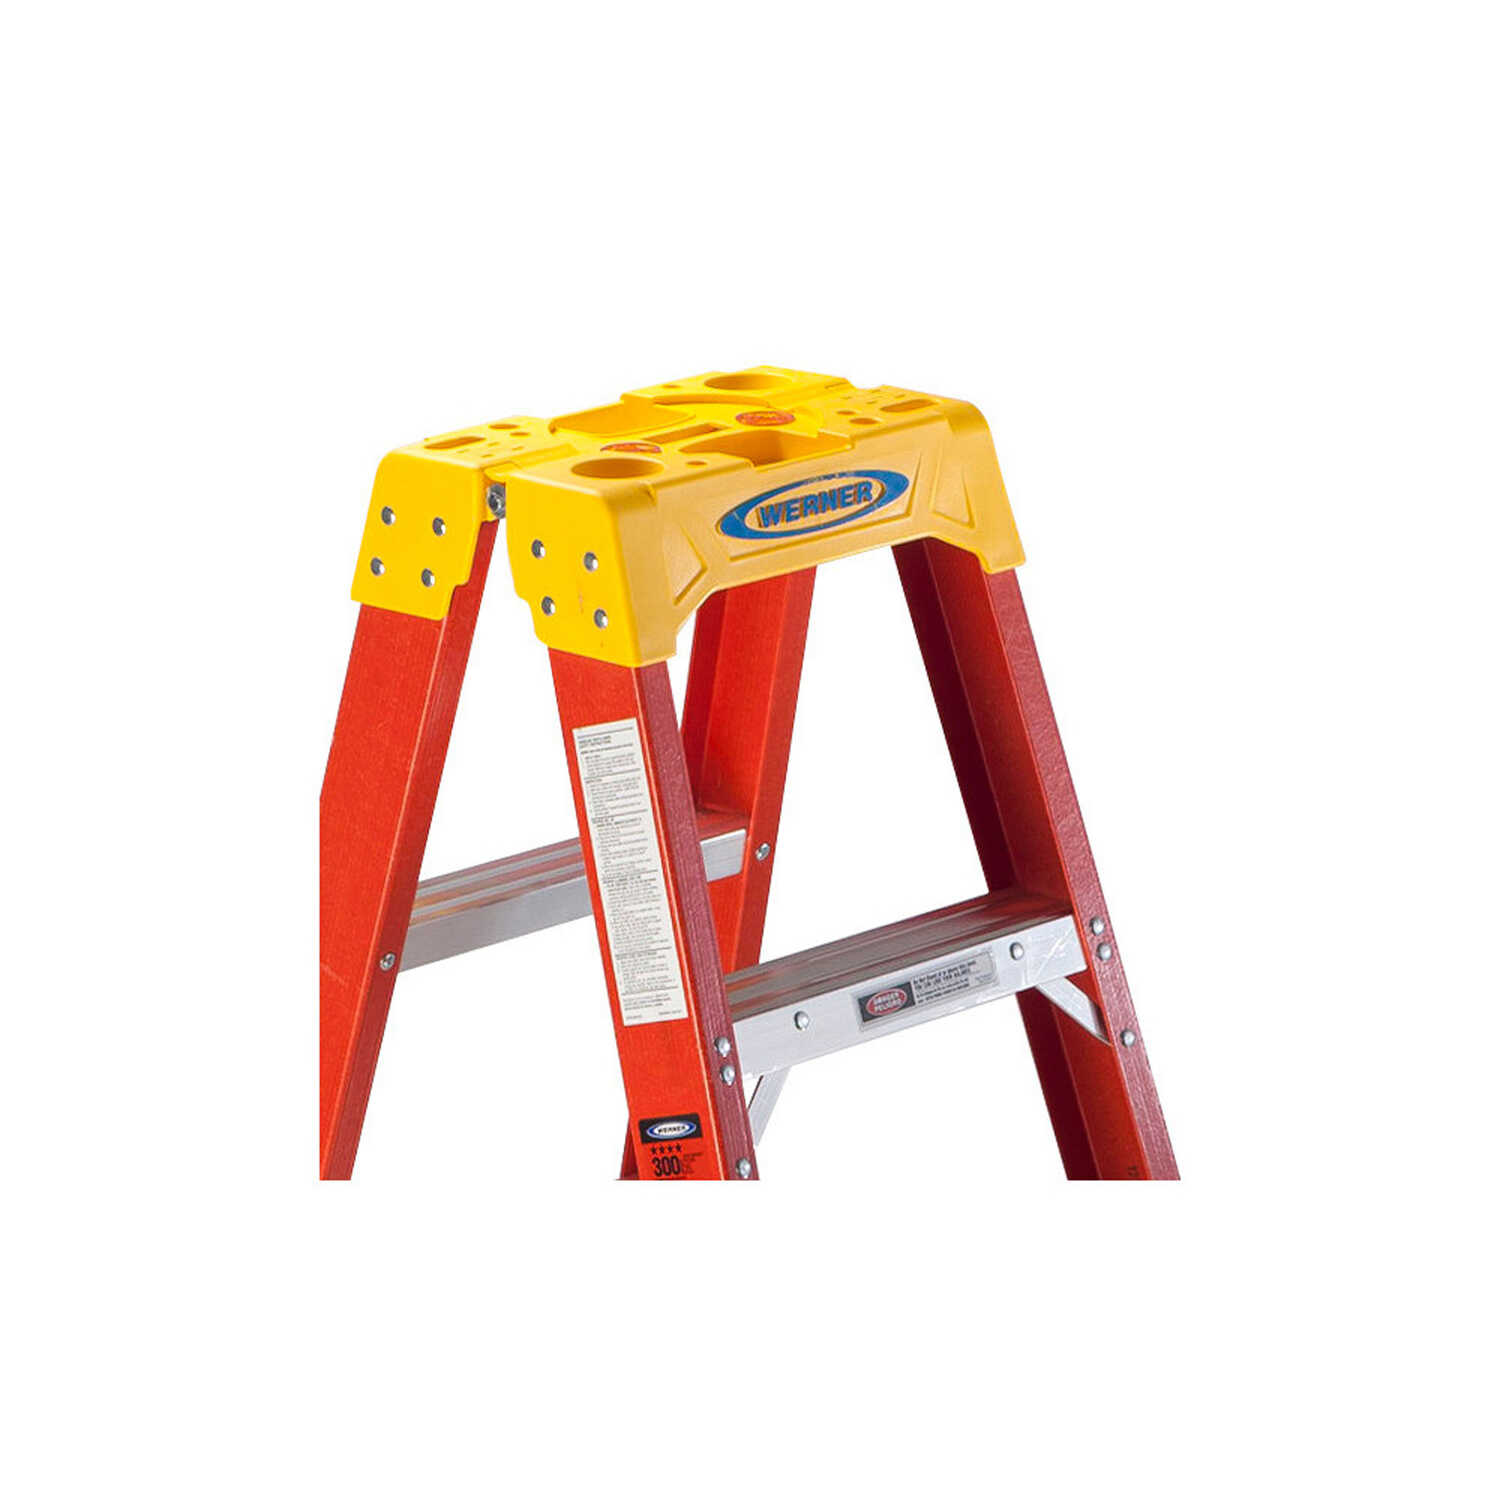 Werner  6 ft. H x 23.38 in. W Fiberglass  Step Ladder  Type IA  300 lb. capacity